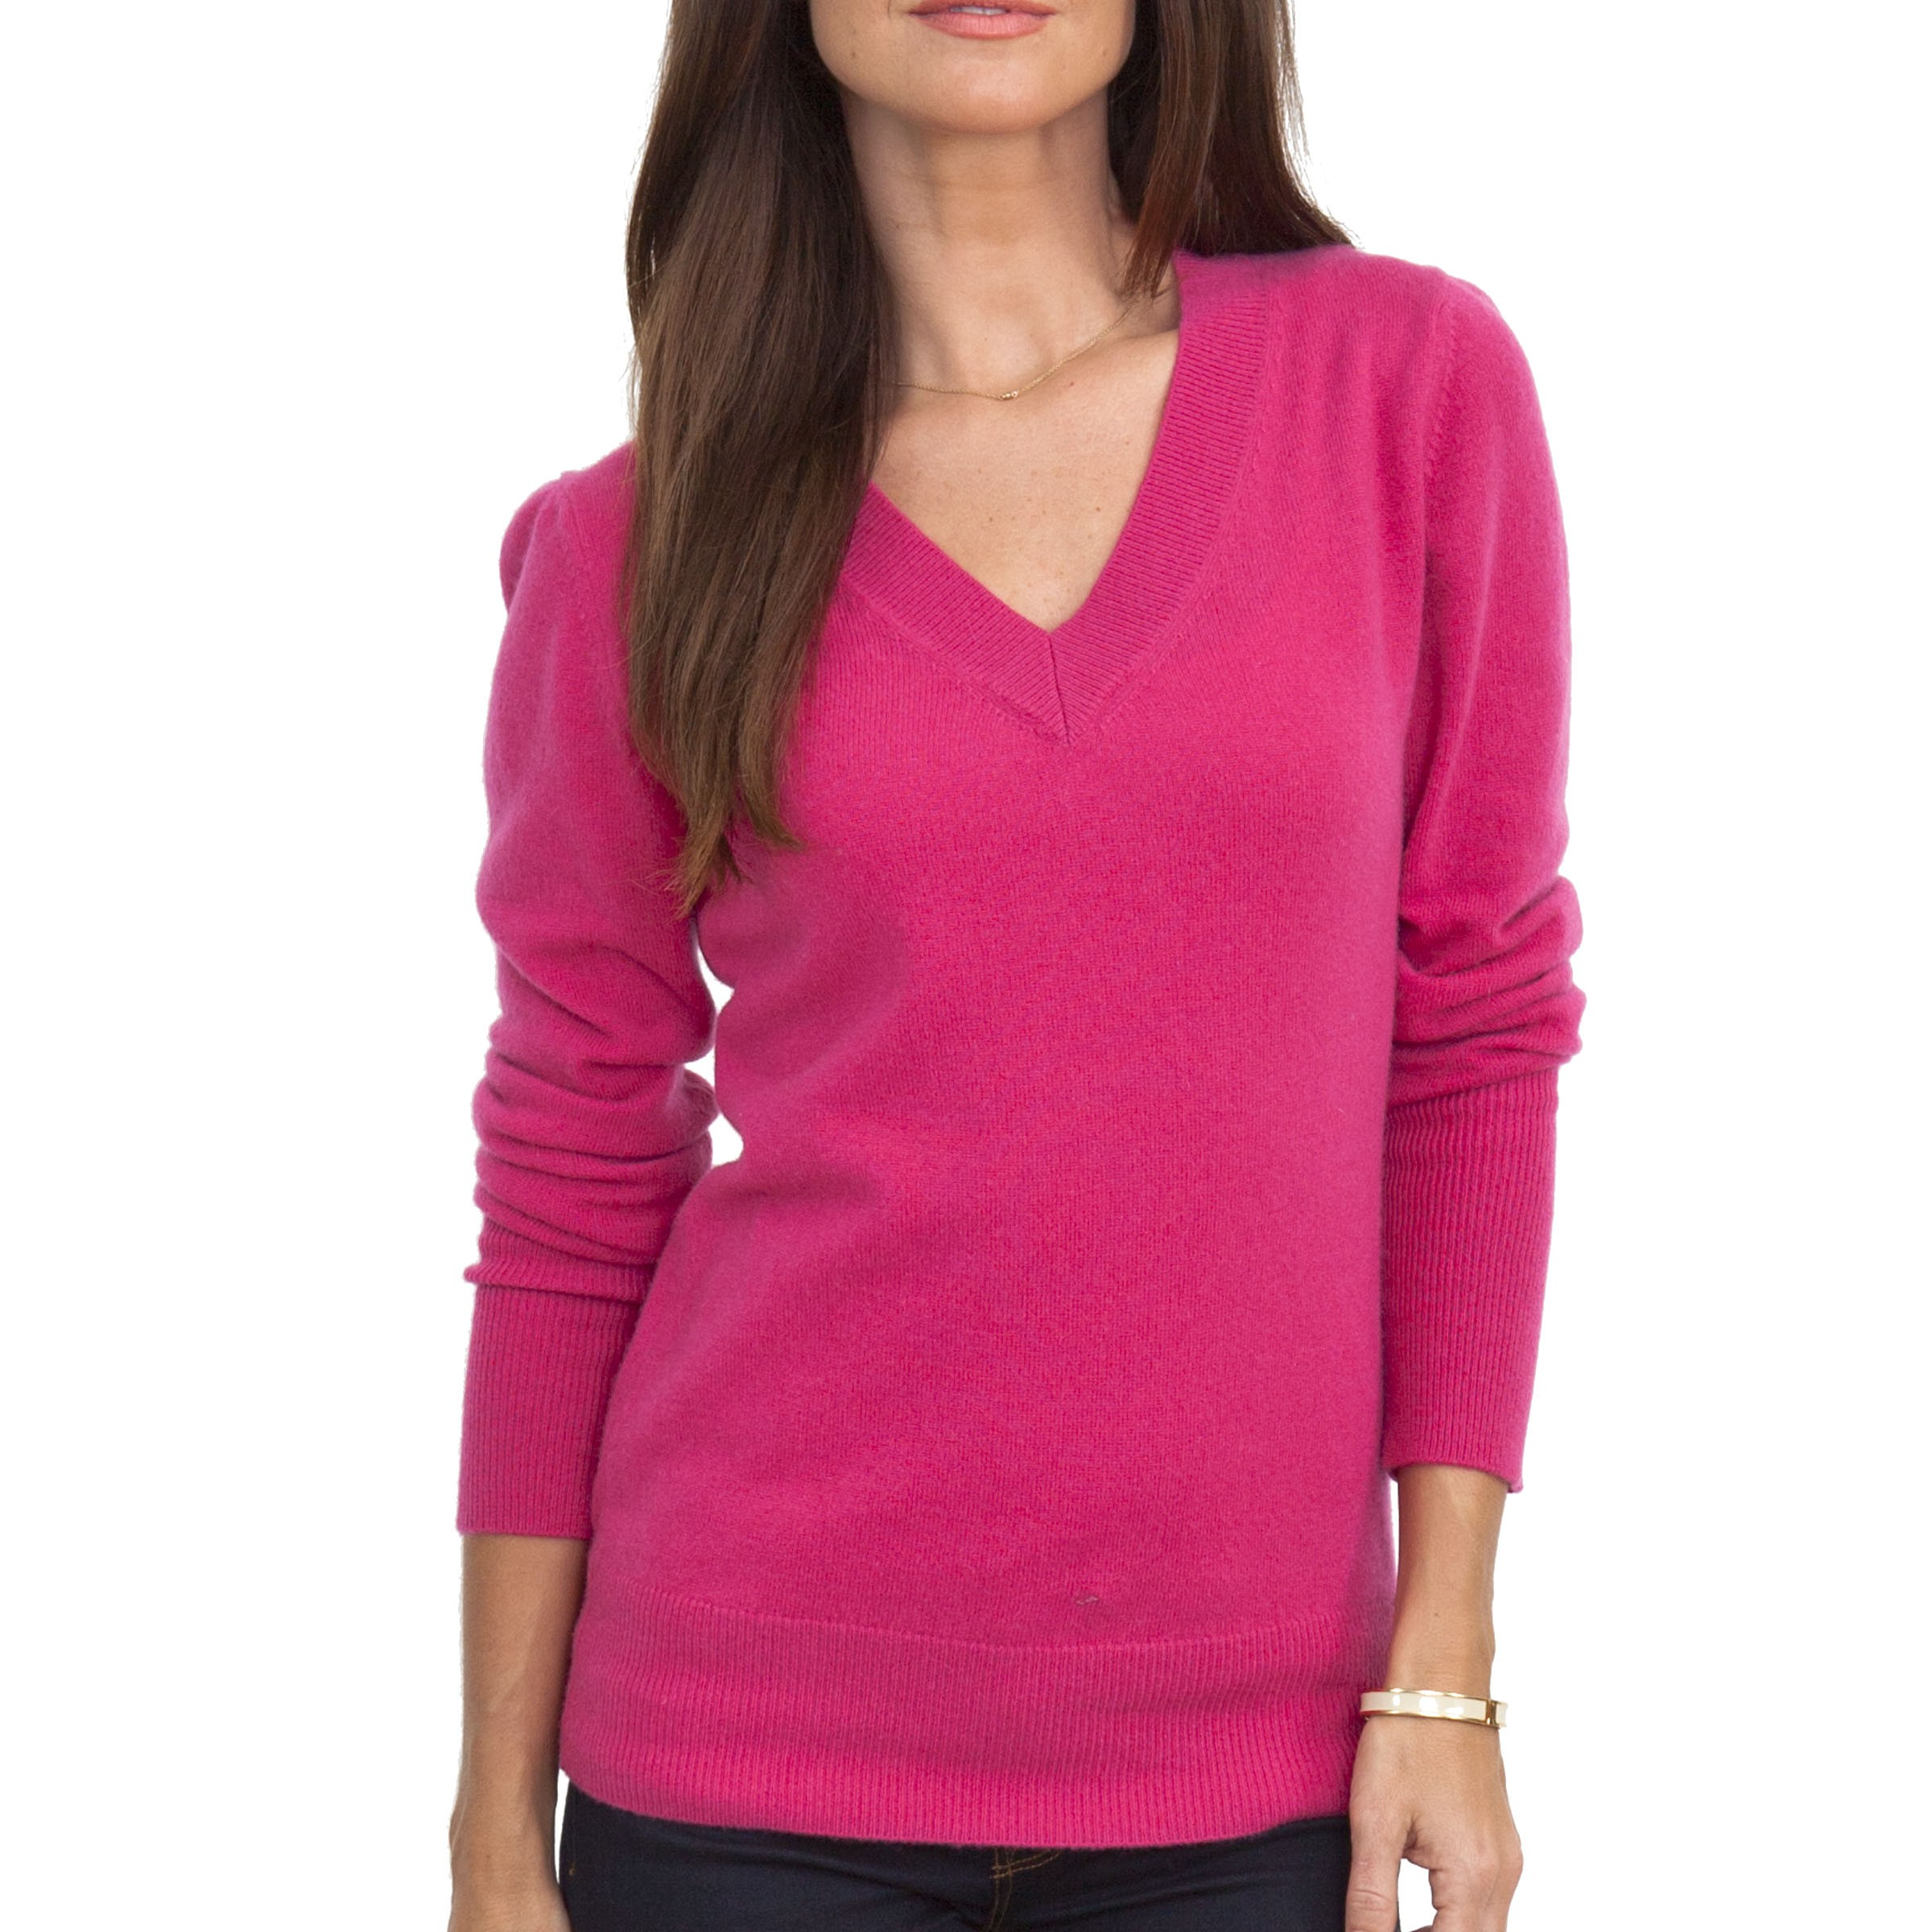 100% CASHMERE V-NECK SWEATER - Sweaters - Women